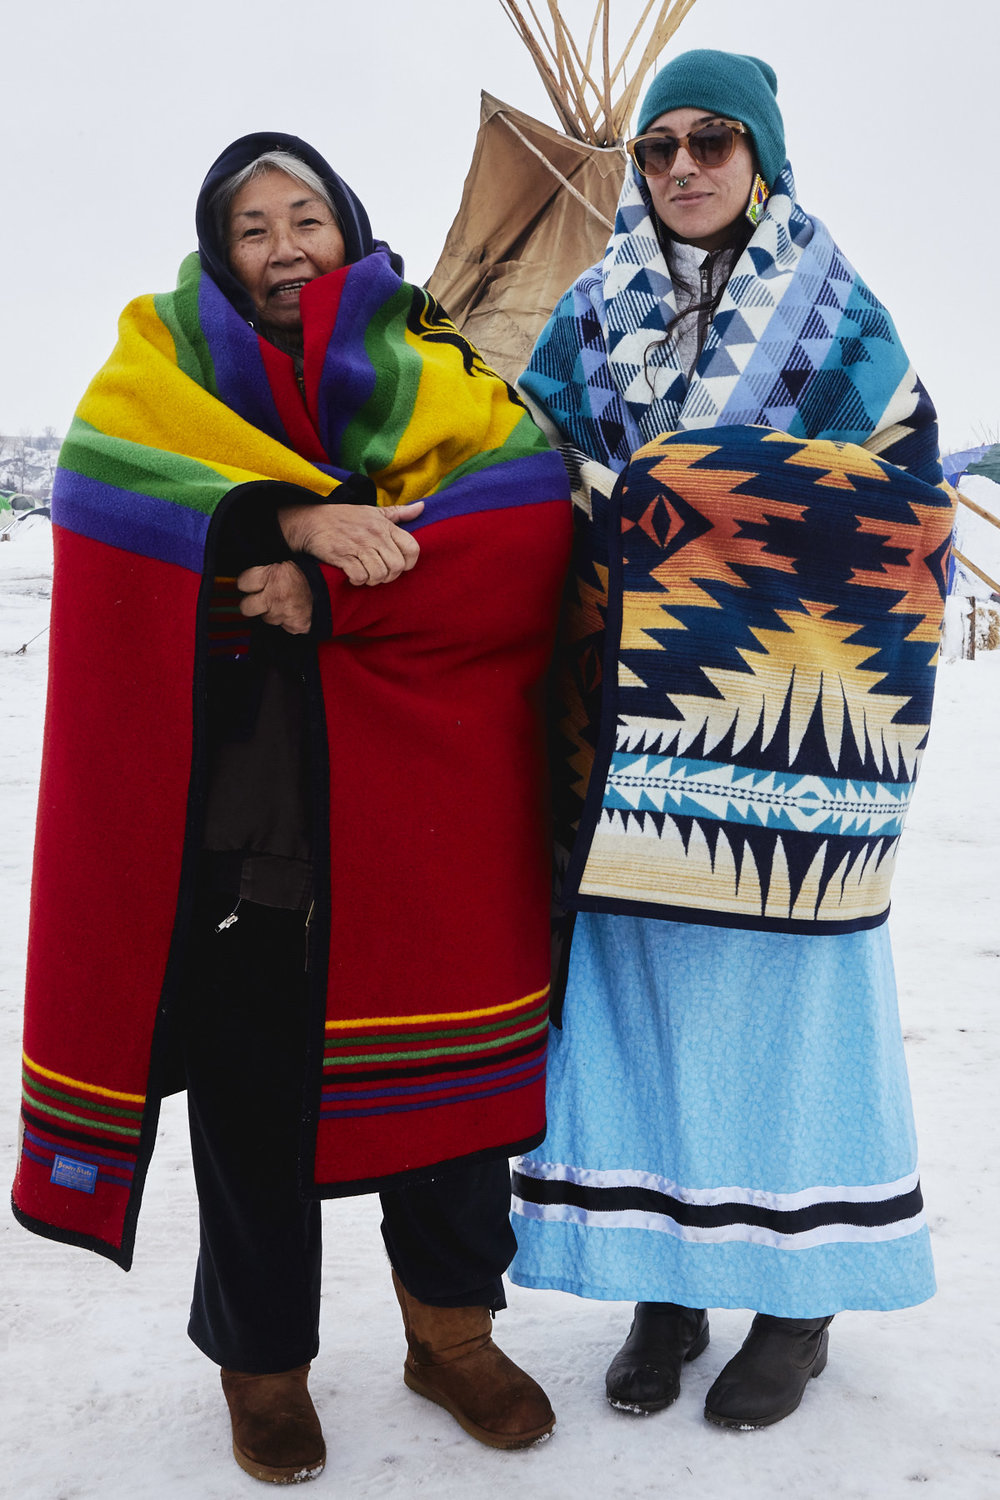 Faith Spotted Eagle and her daughter, Brook, from the Yankton Sioux (Ihanktonwan Dakota Oyate) tribe in Yanktown Reservation, South Dakota